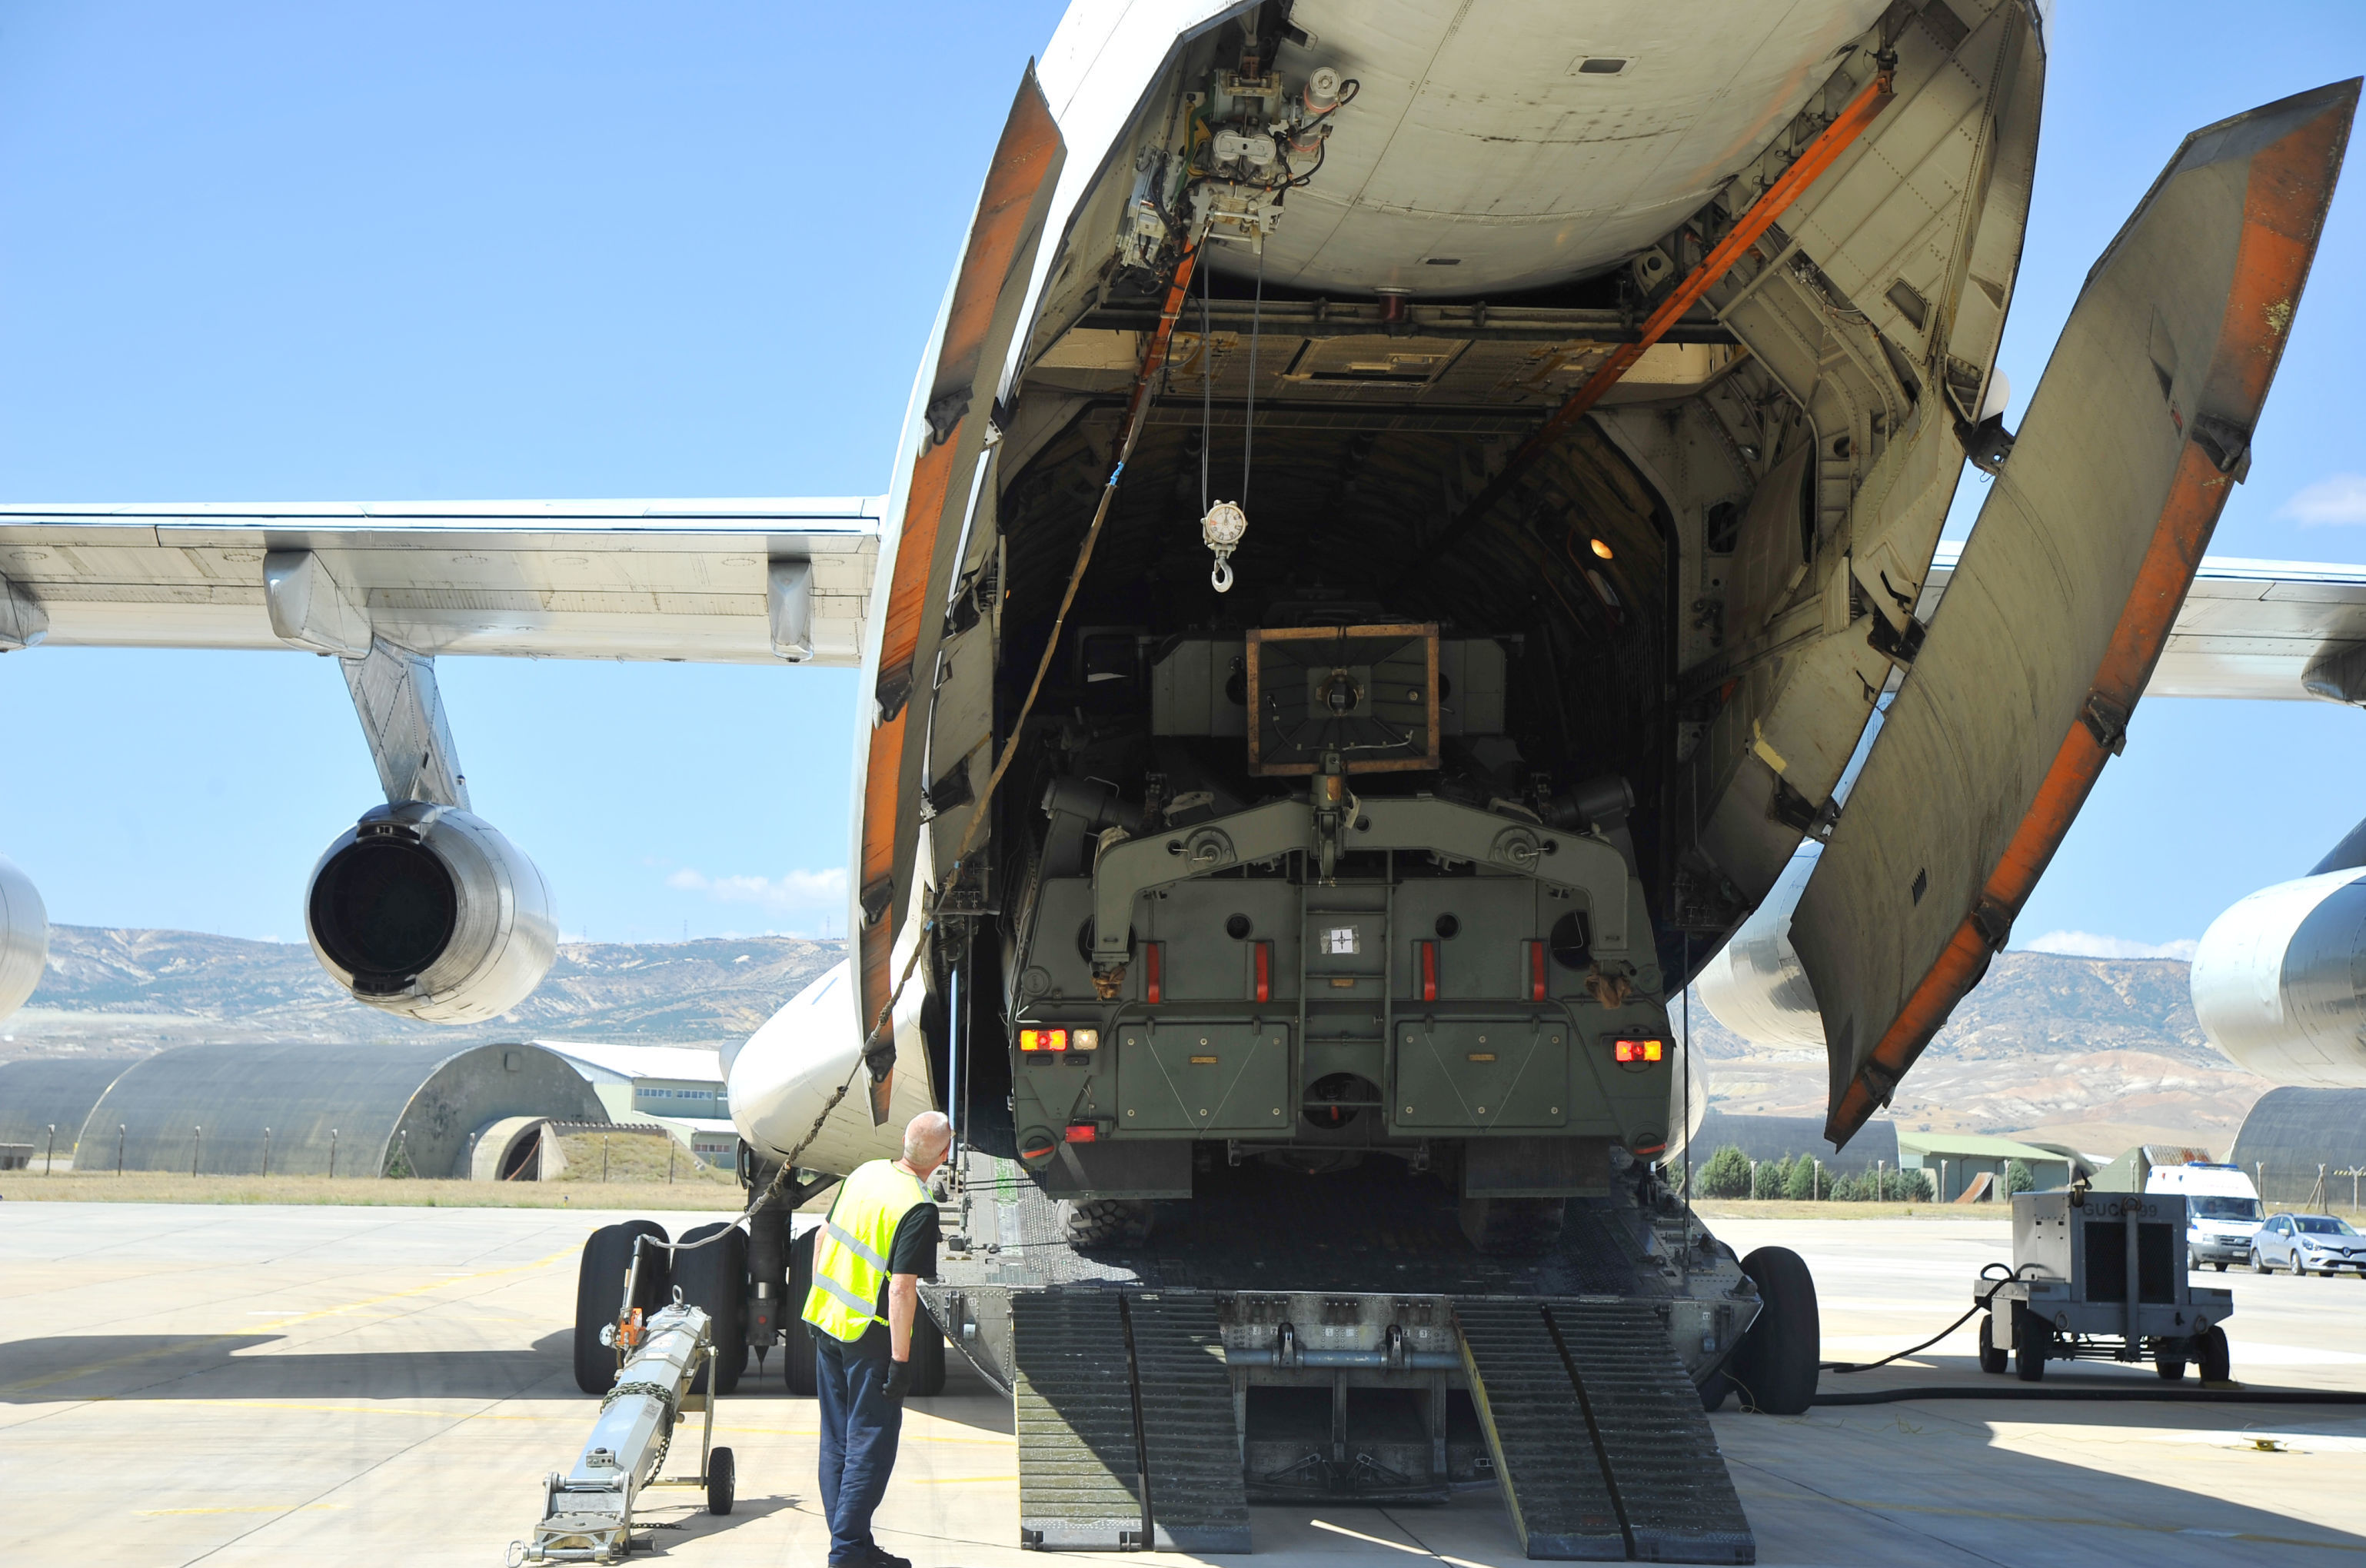 Parts of a Russian S-400 defense system are unloaded from a Russian plane at Murted Airport near Ankara, Turkey, August 27, 2019